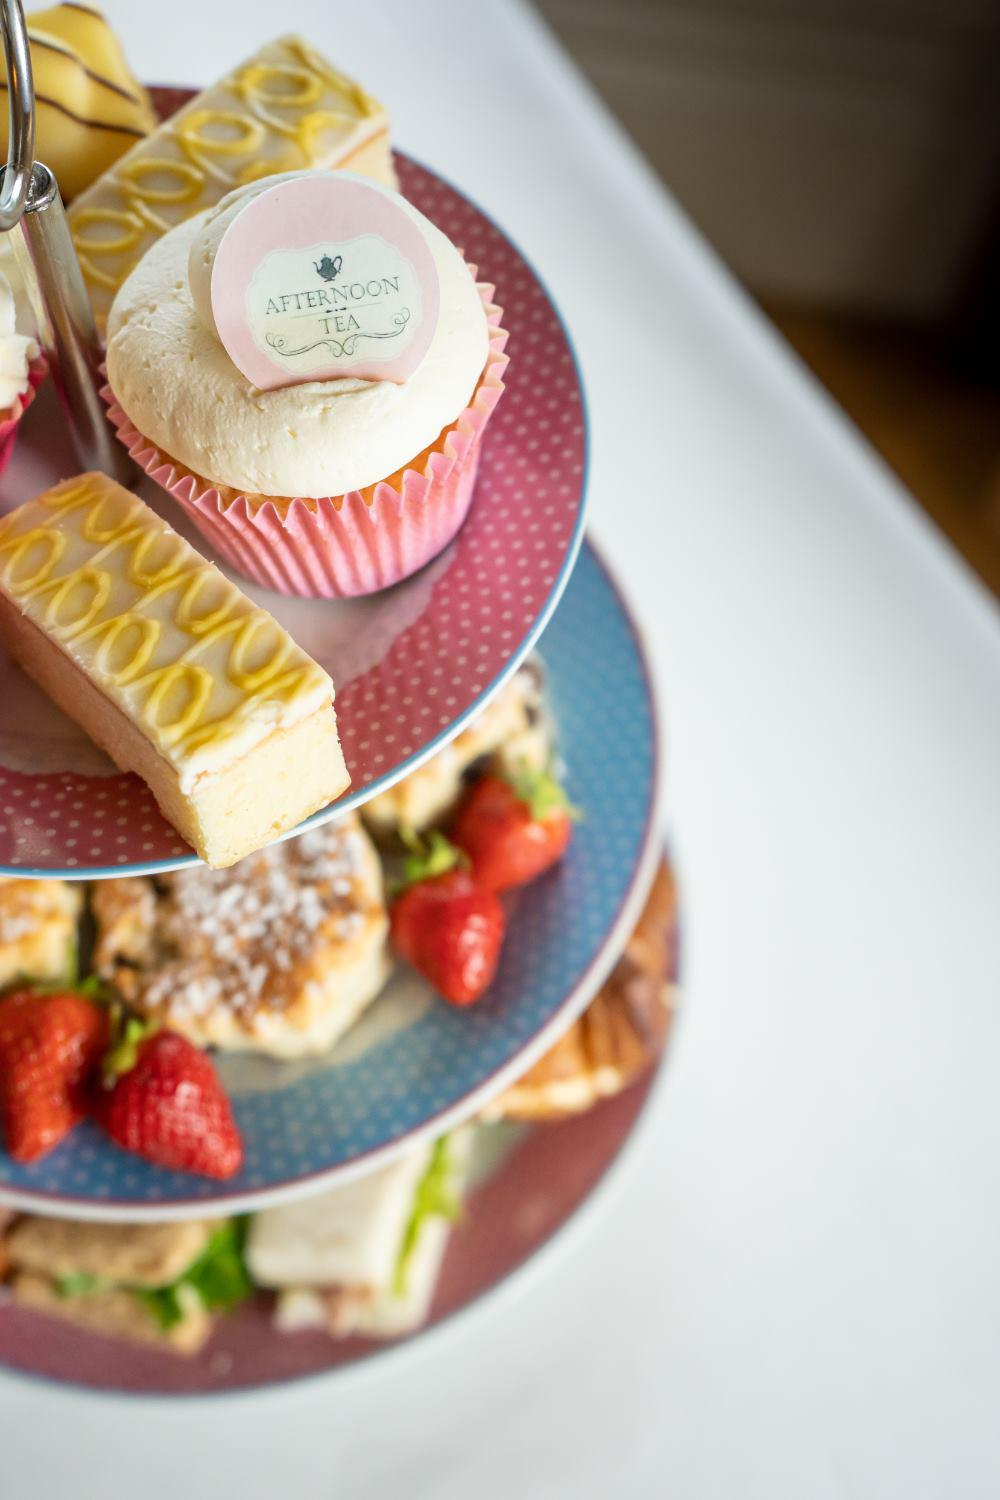 Afternoon tea with branded cupcakes using printed edible toppers